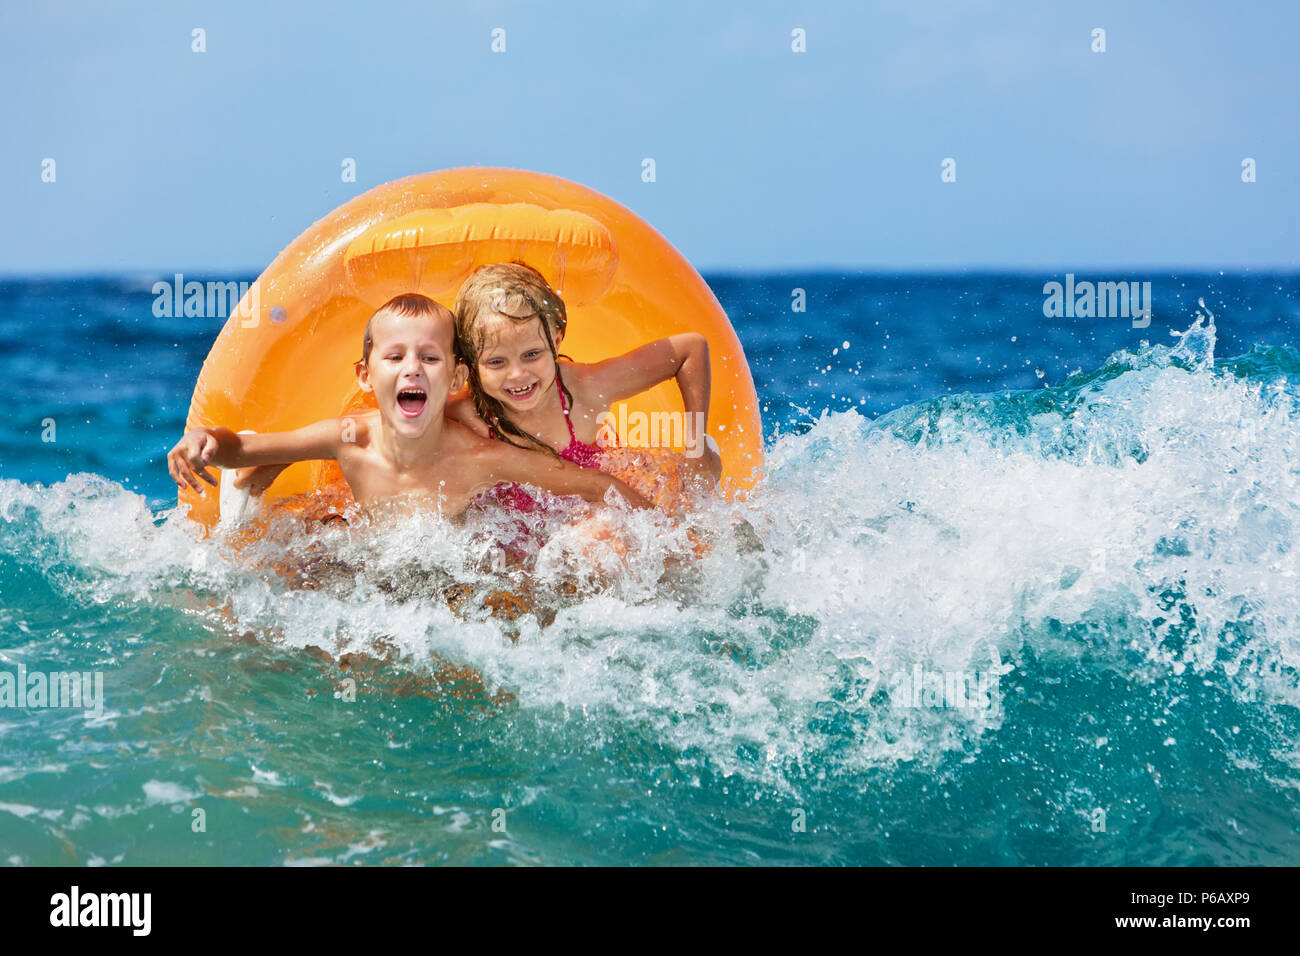 Happy kids have fun in sea surf on beach. Joyful couple of children on inflatable ring ride on wave. Travel lifestyle, swimming activities on holidays - Stock Image